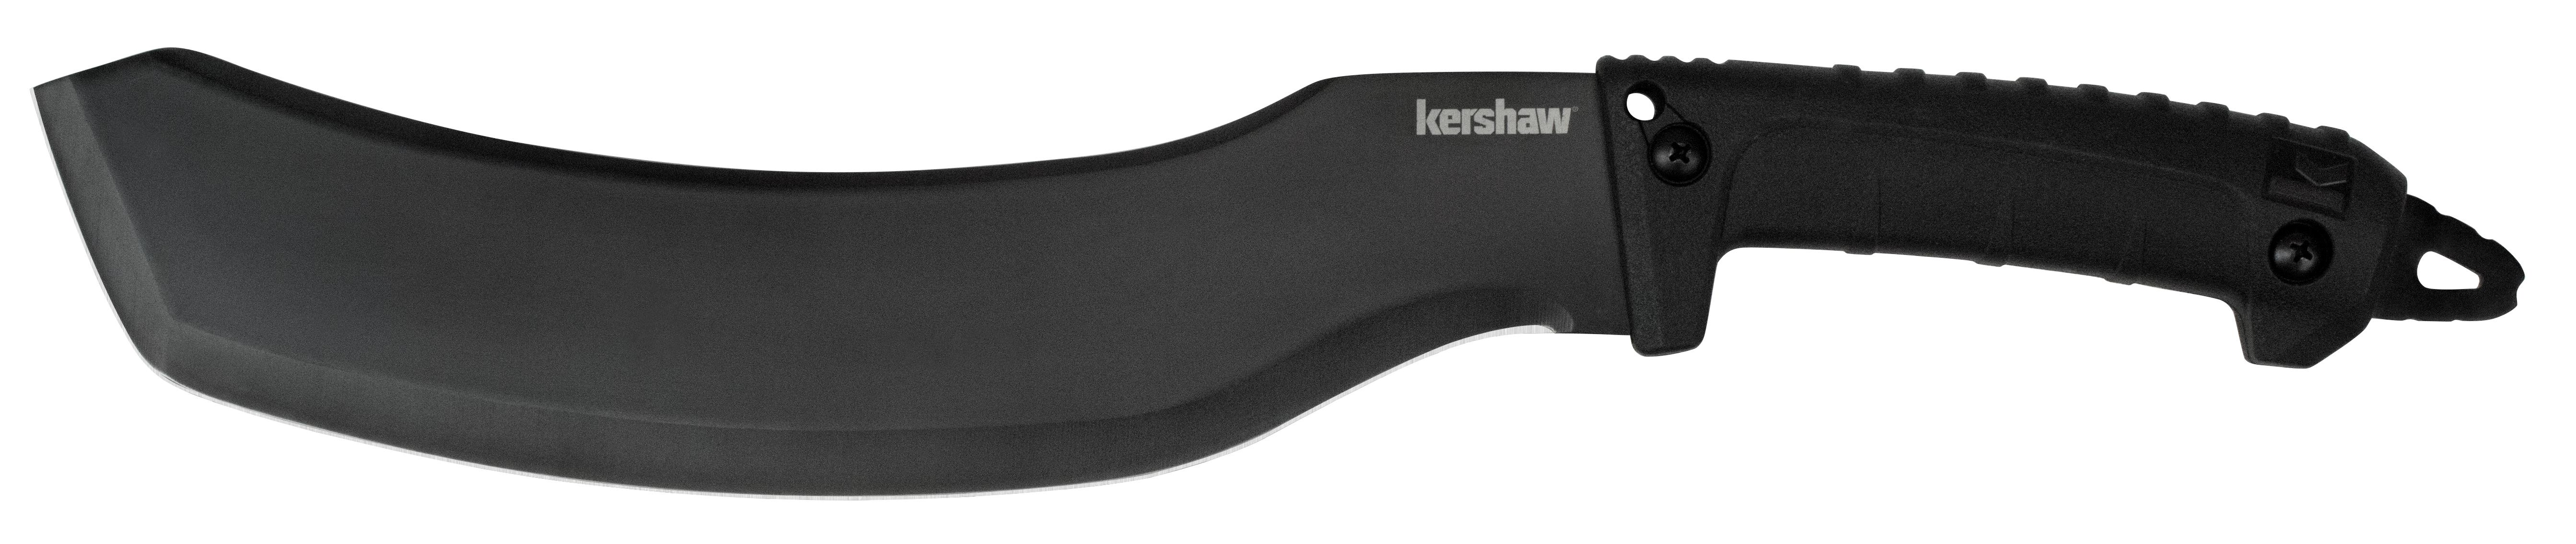 1072X - KERSHAW Camp 12